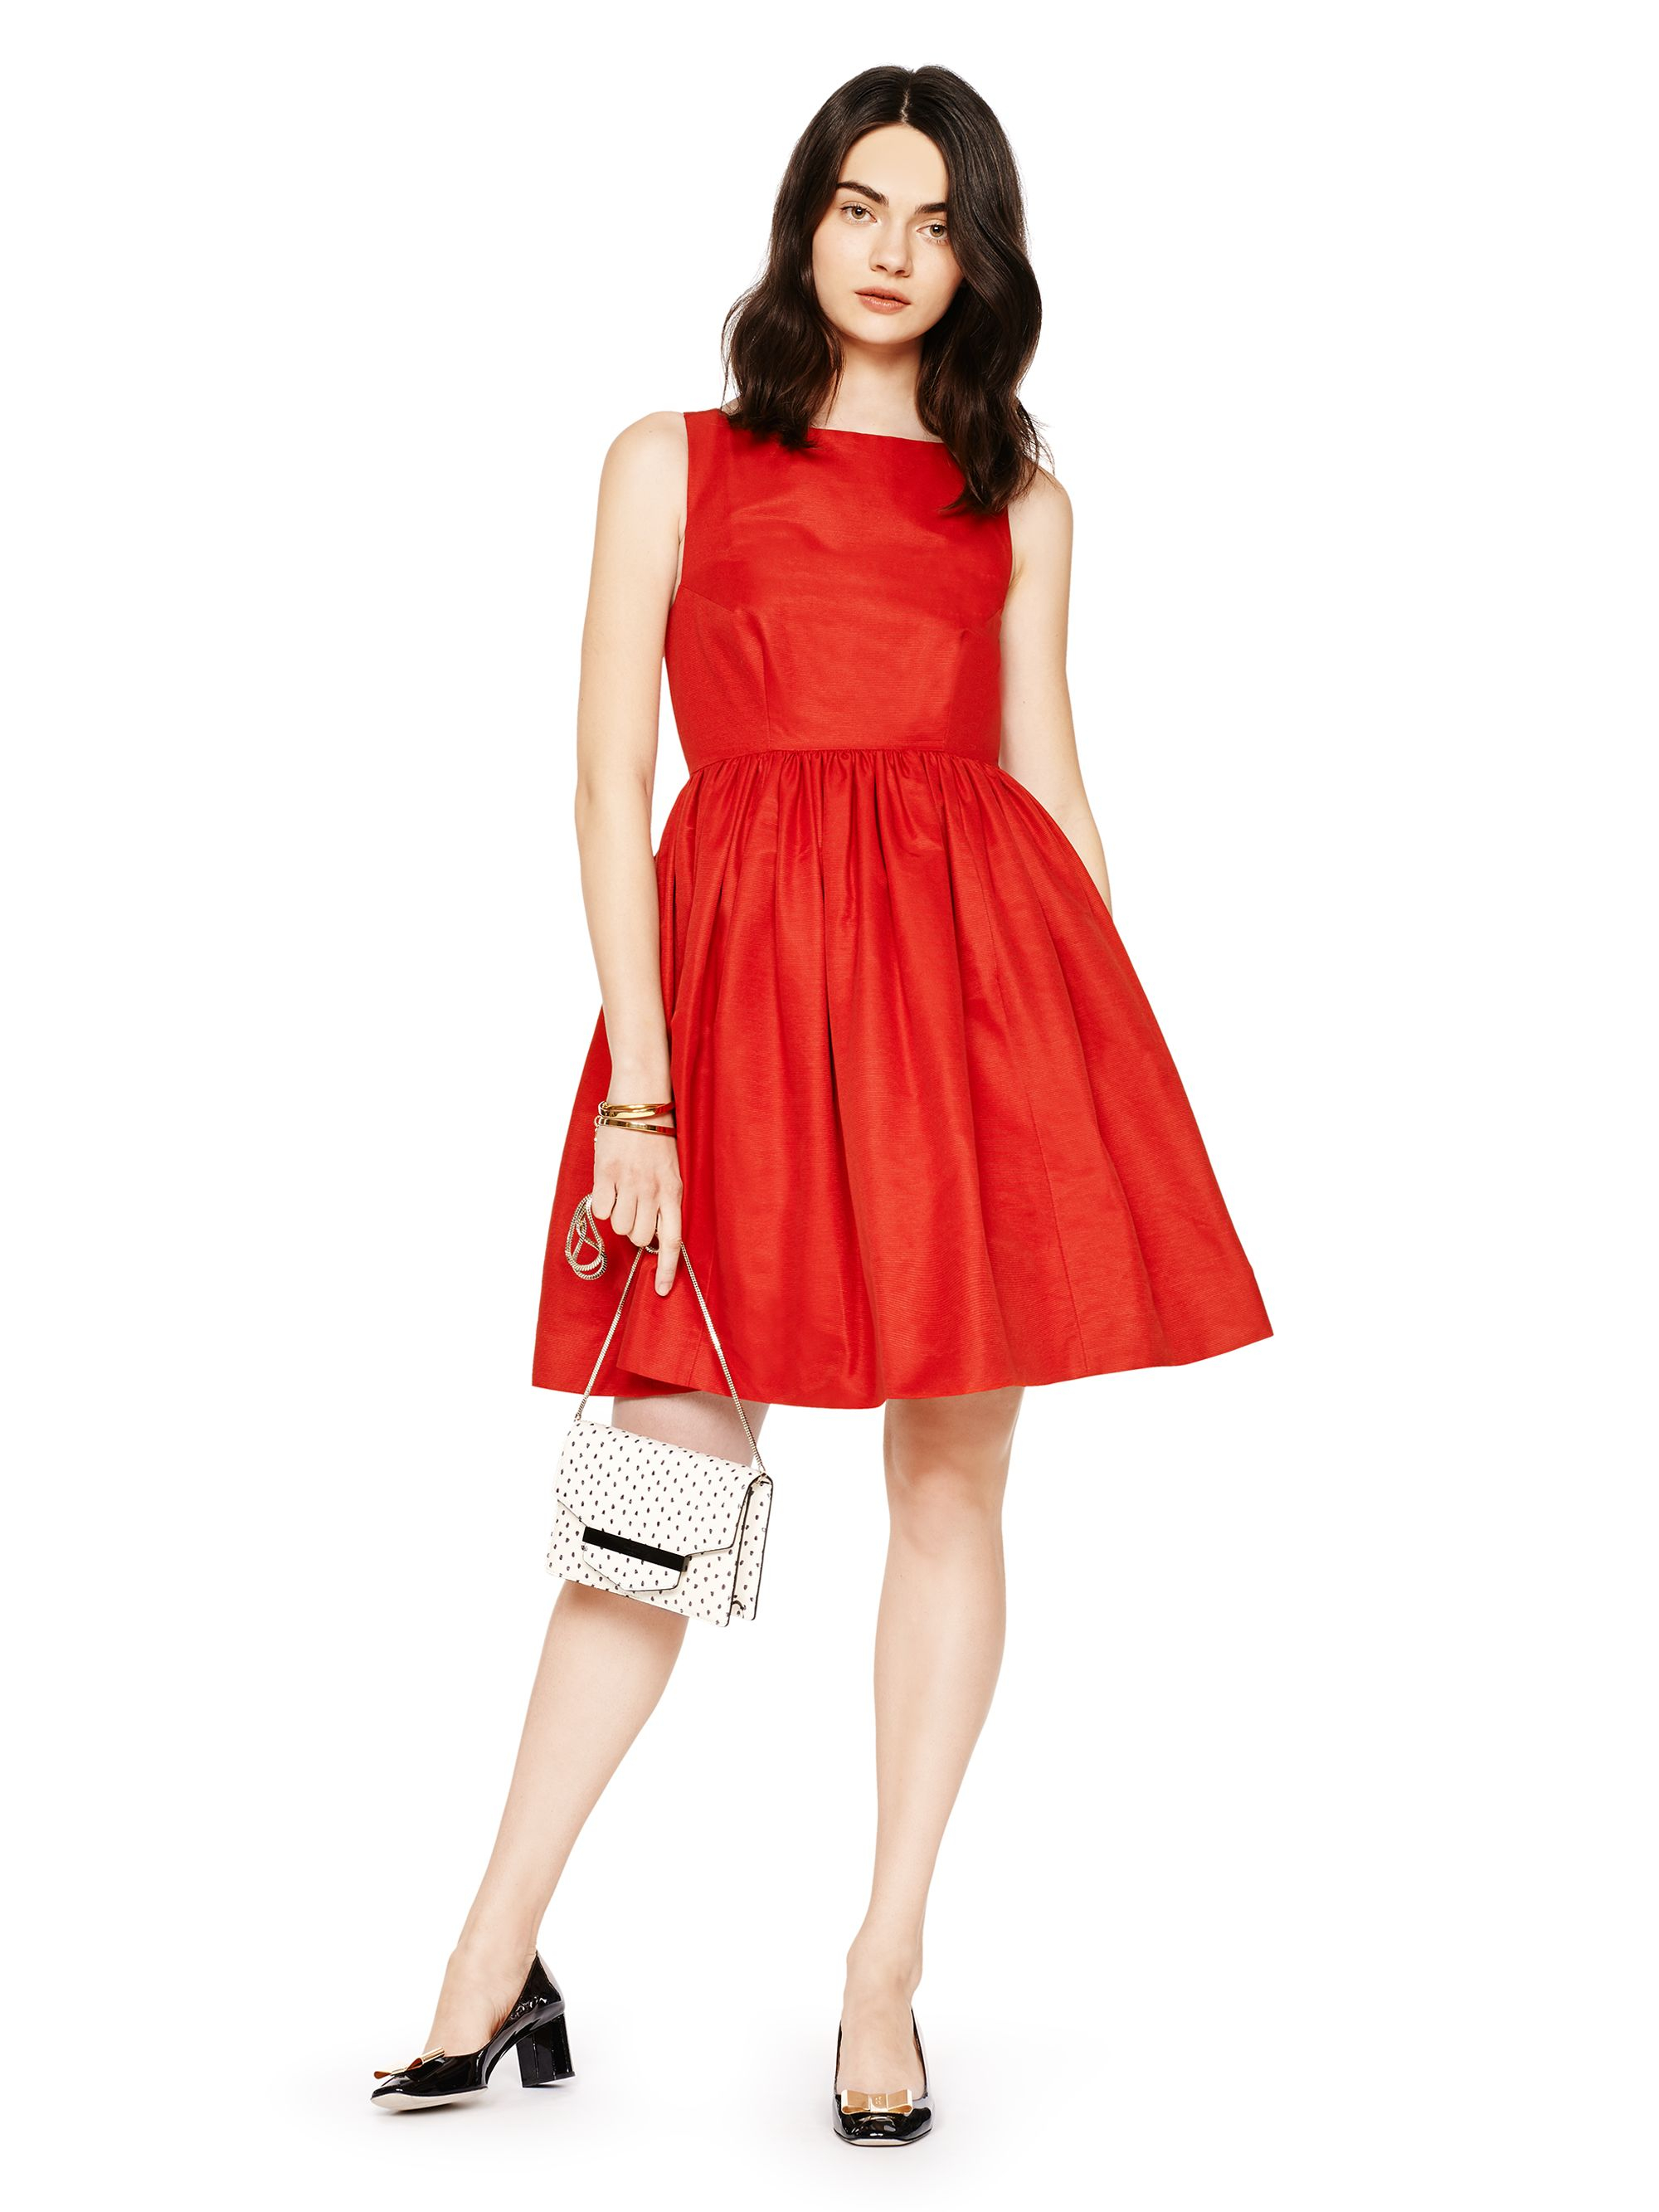 Kate Spade New York Tanner Dress In Red Lyst